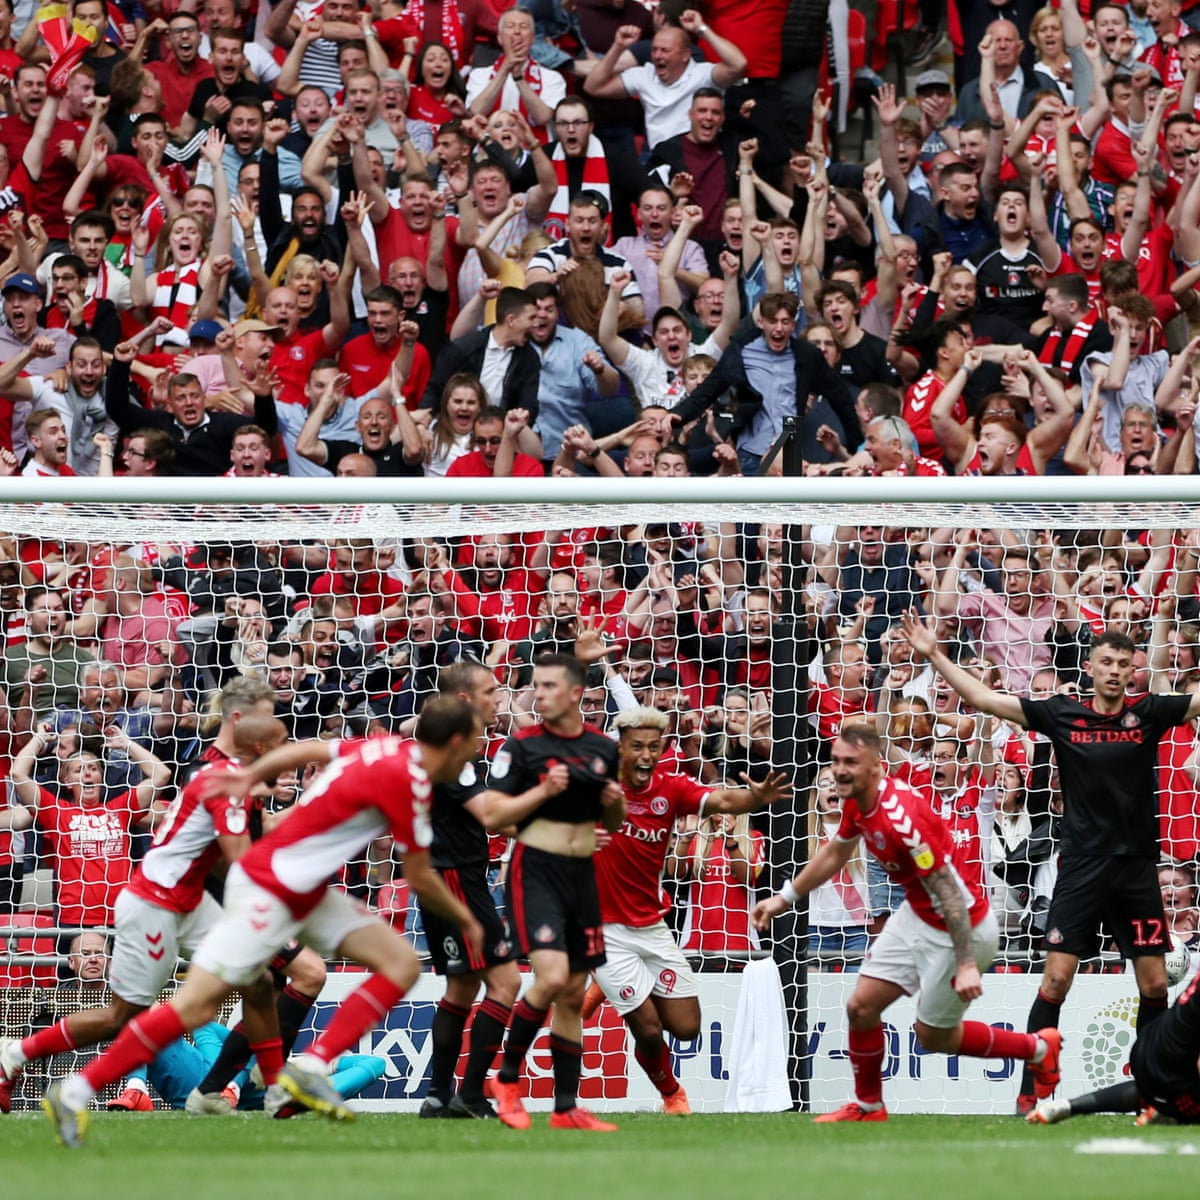 Charlton Athletic 2-1 Sunderland League One play-off final  as